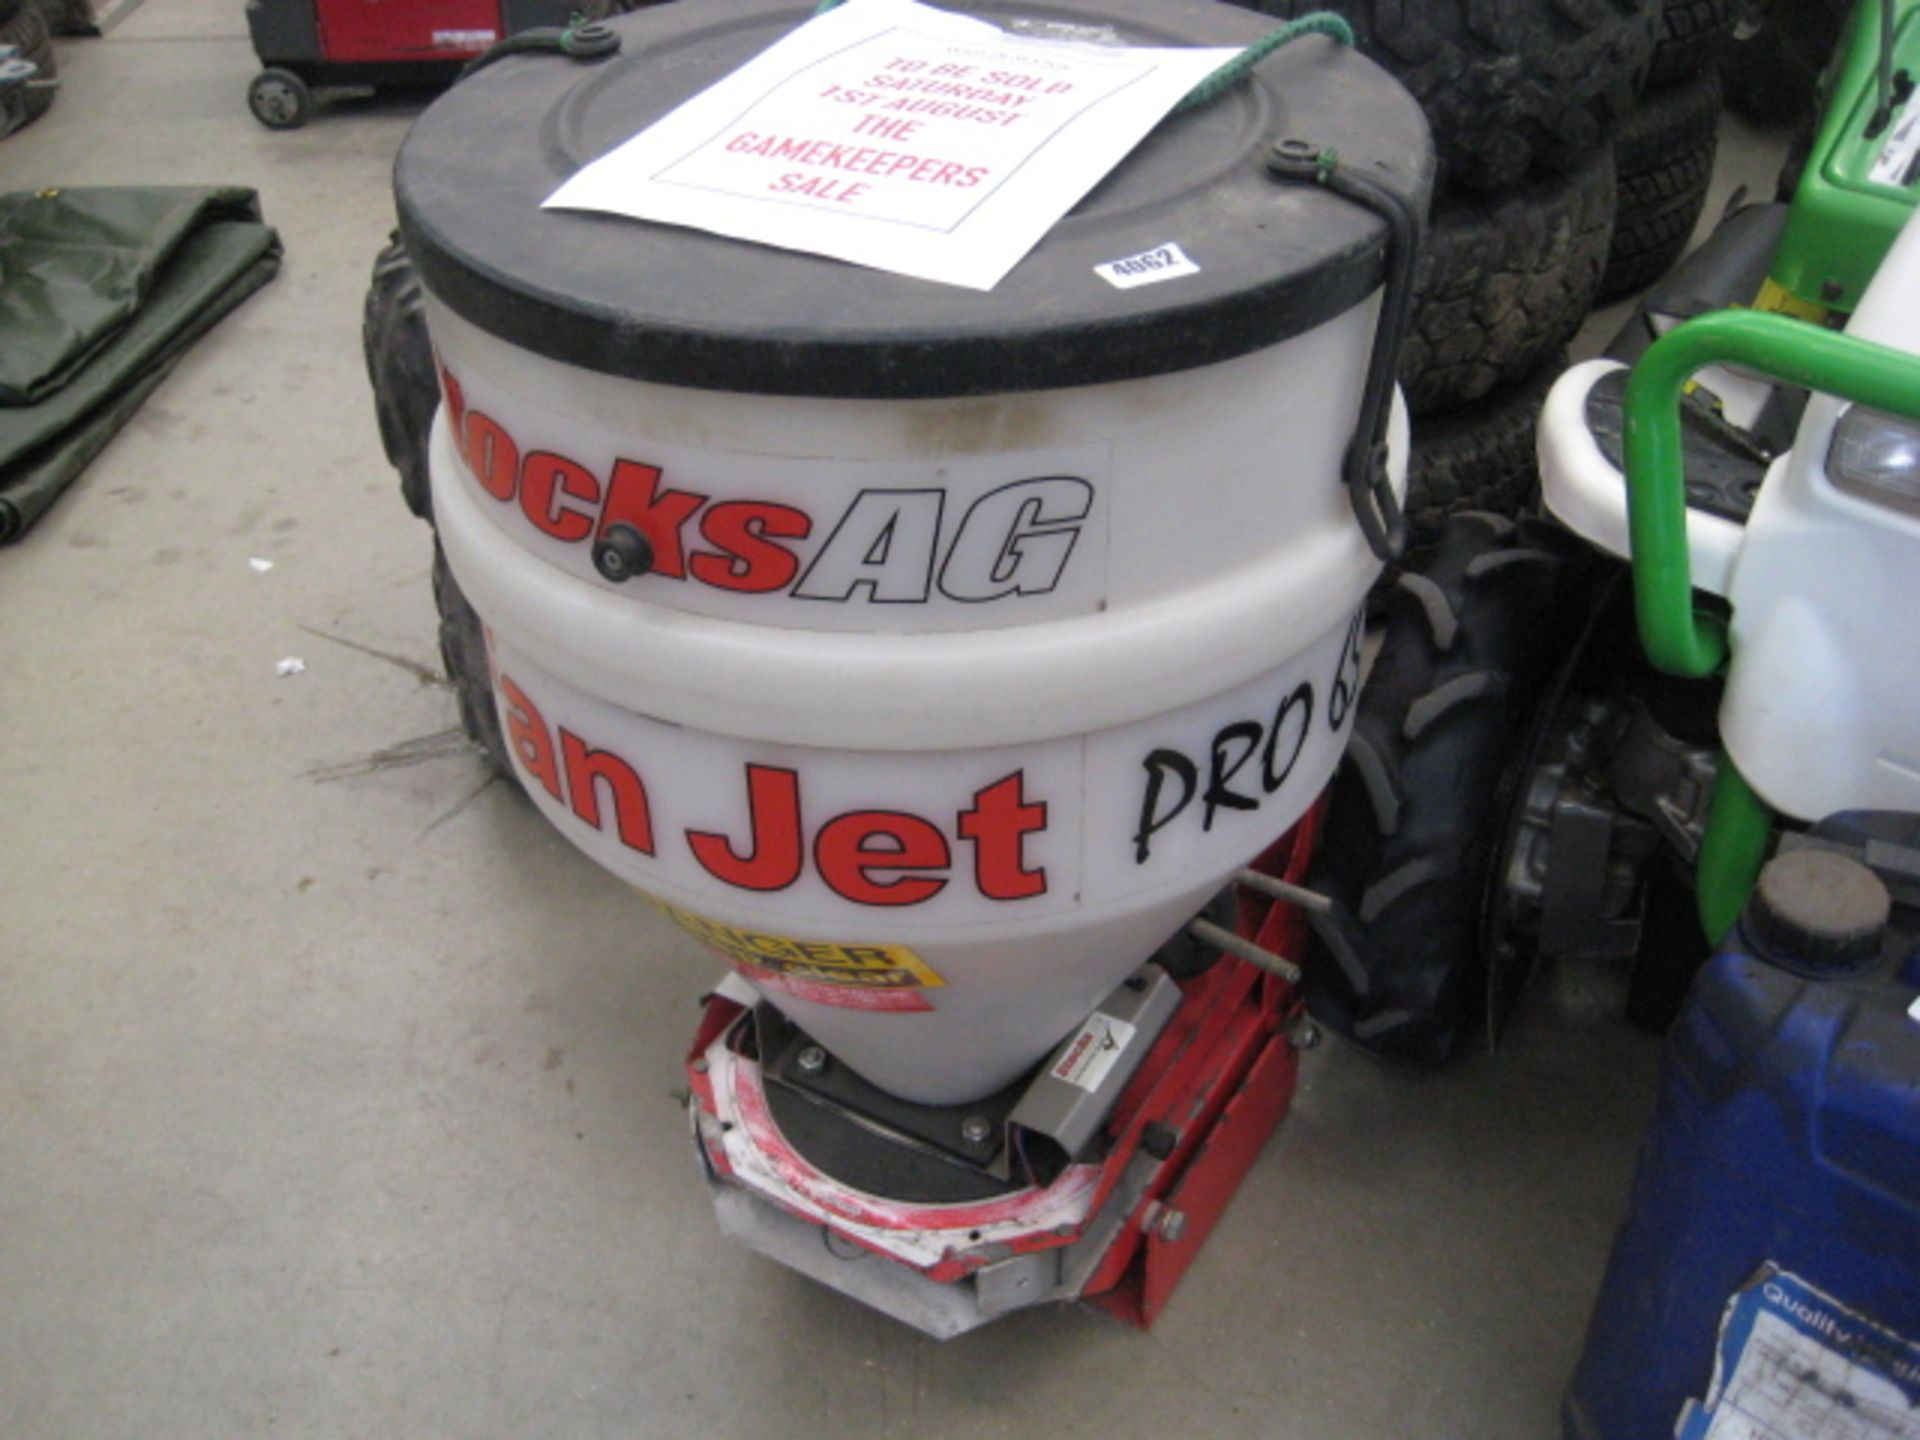 Lot 4062 - Stocks AG Fan Jet Pro 65 rotary spreader with controller